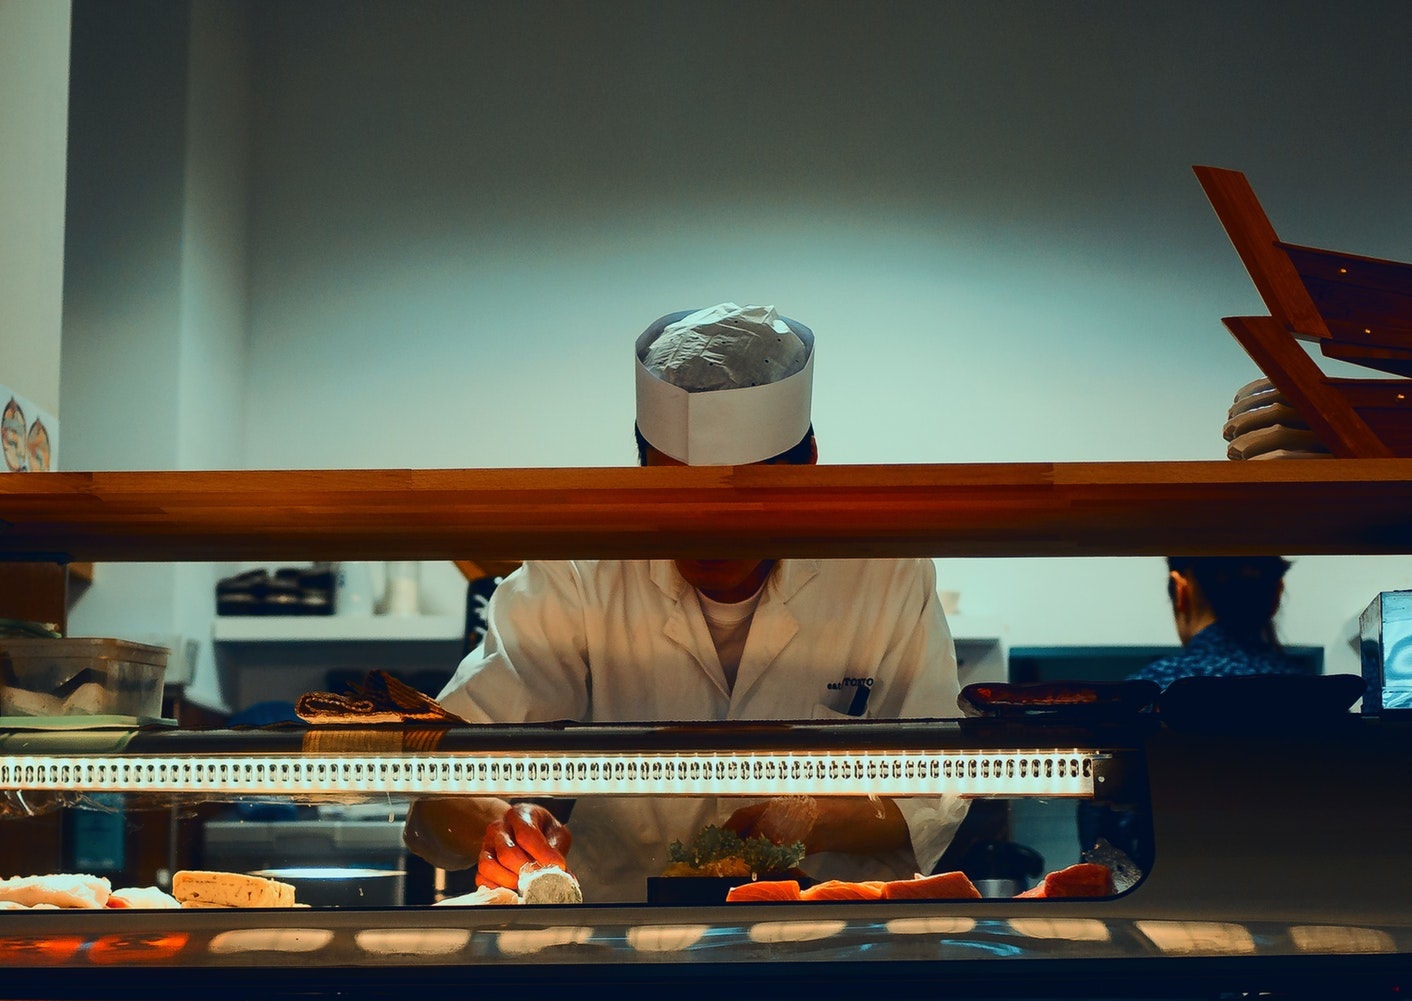 man preparing food on a kitchen restaurant